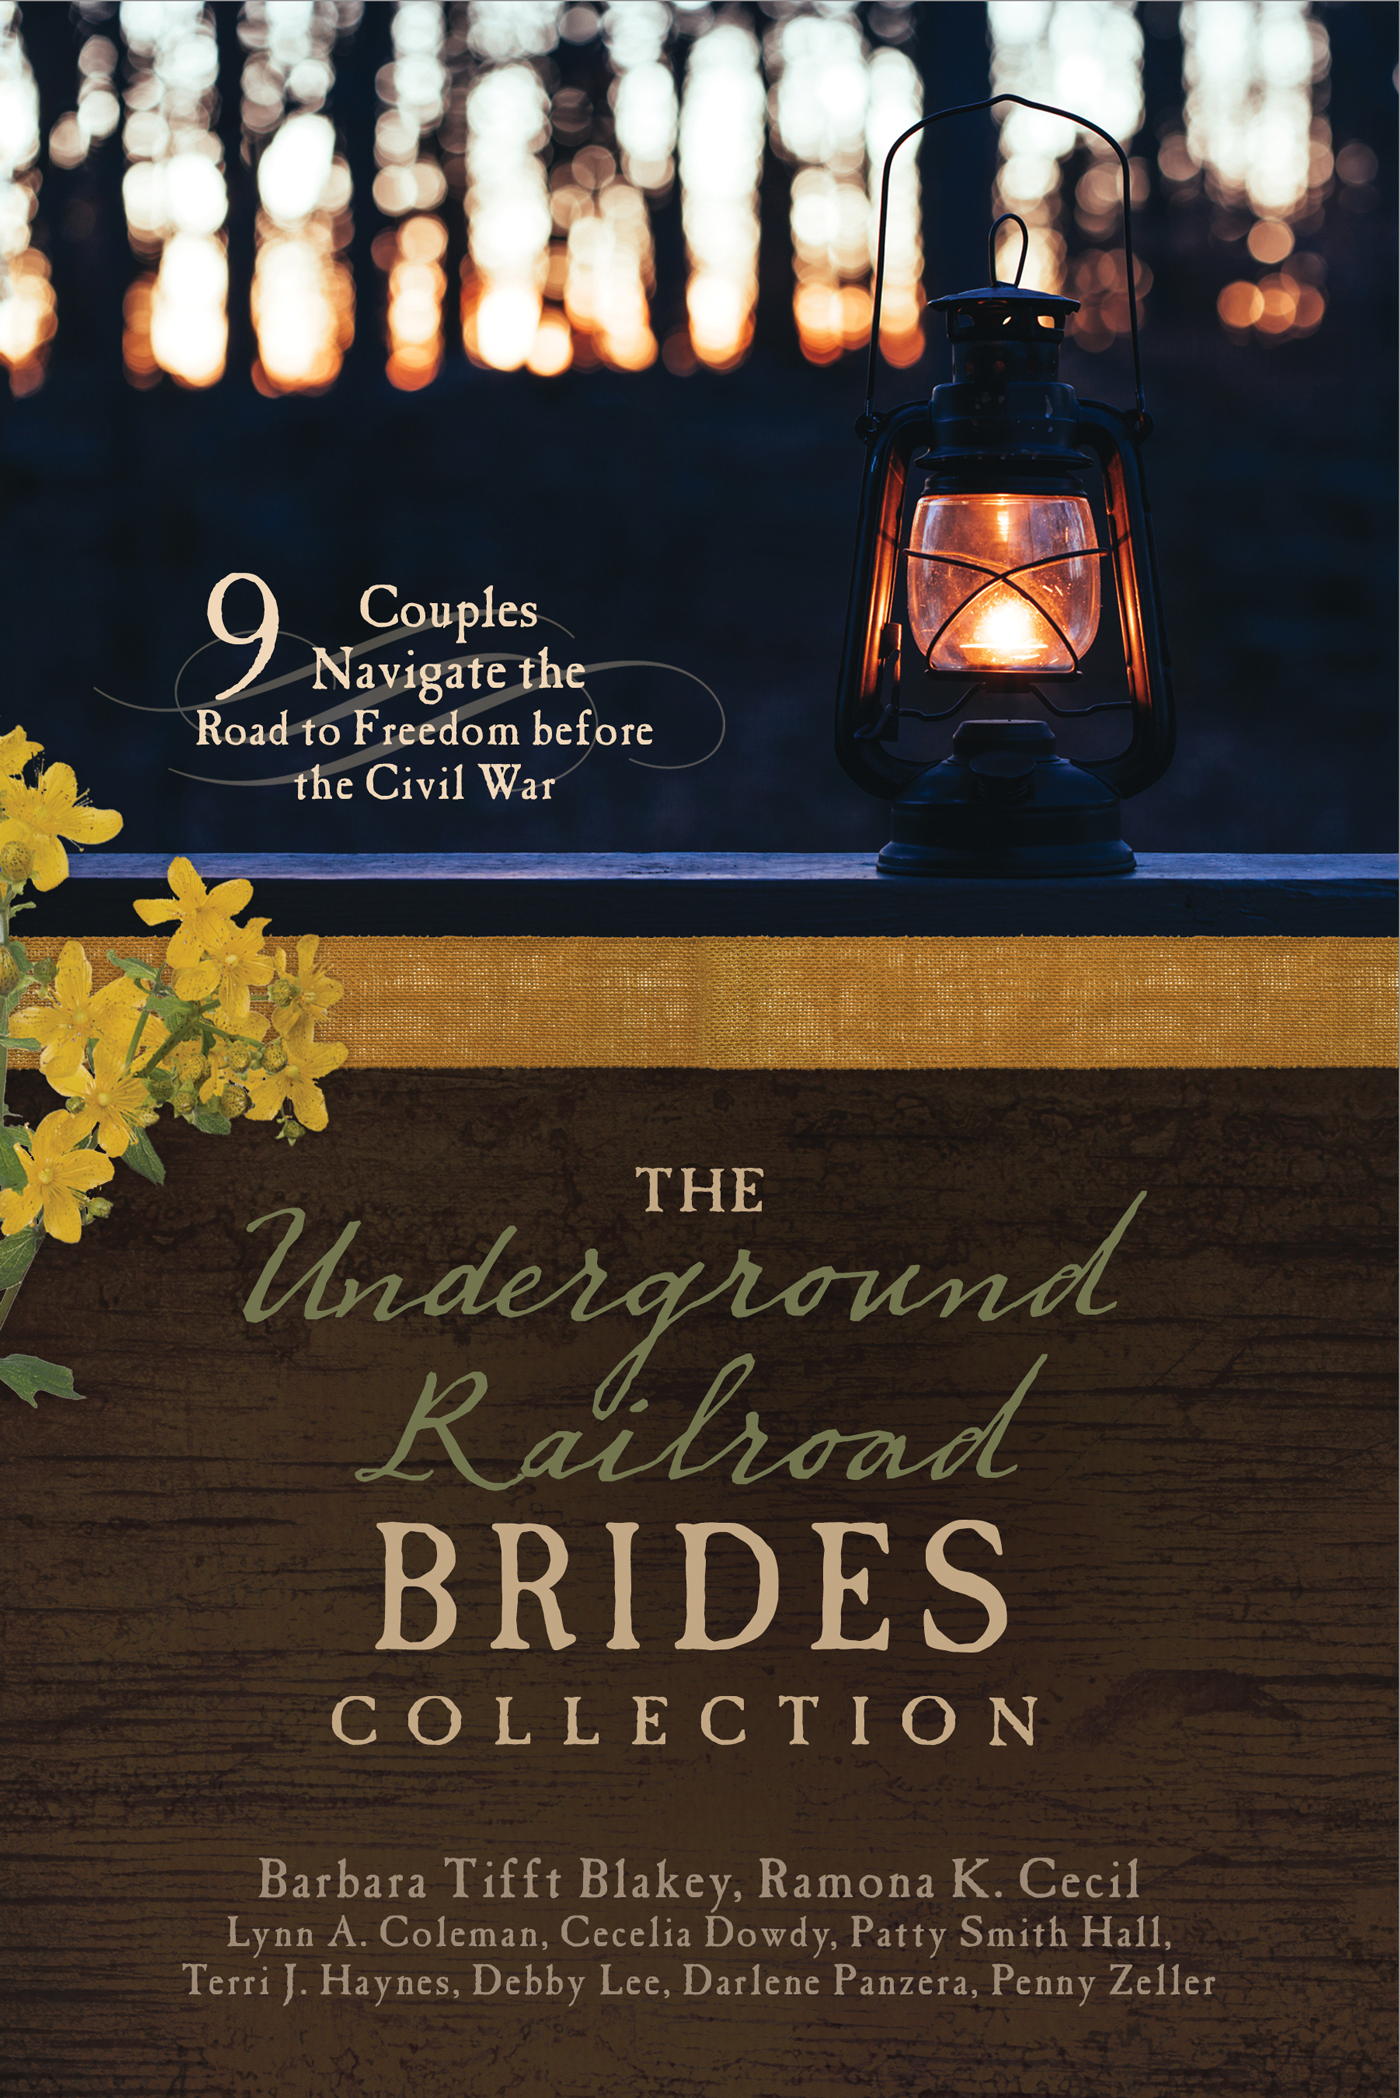 The Underground Railroad Brides Collection: The Song of Hearts Set Free by Darlene Panzera Jersey City, New Jersey—1850 Annie Morrison, a budding Jersey City abolitionist, falls in love with Isaiah Hawkins, a handsome ferry dock worker who helps her transport slaves across the Hudson River to New York. But when she sees him aid notorious slave catcher, Simon Cole, the man threatening her family, old fears of betrayal rise up to haunt her and she must question -- is Isaiah really friend or foe?